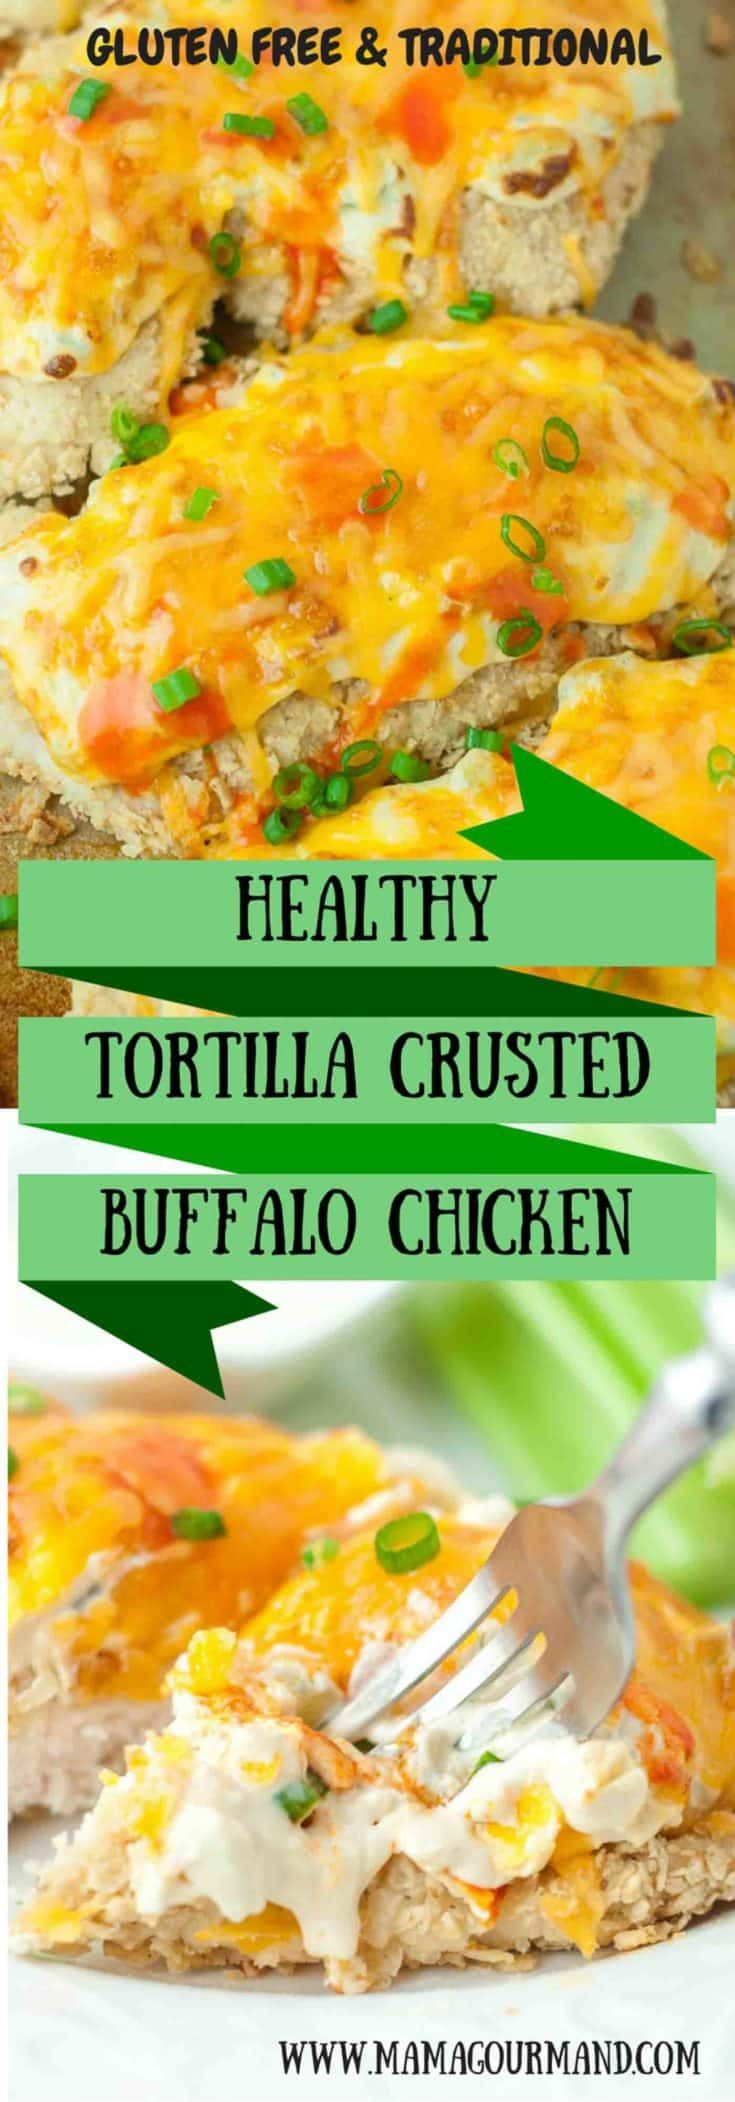 An amazing and healthy chicken recipe! The chicken is coated in crunchy crushed tortilla chips, baked with creamy buffalo topping, and smothered with cheddar cheese. It will easily become a family favorite. https://www.mamagourmand.com